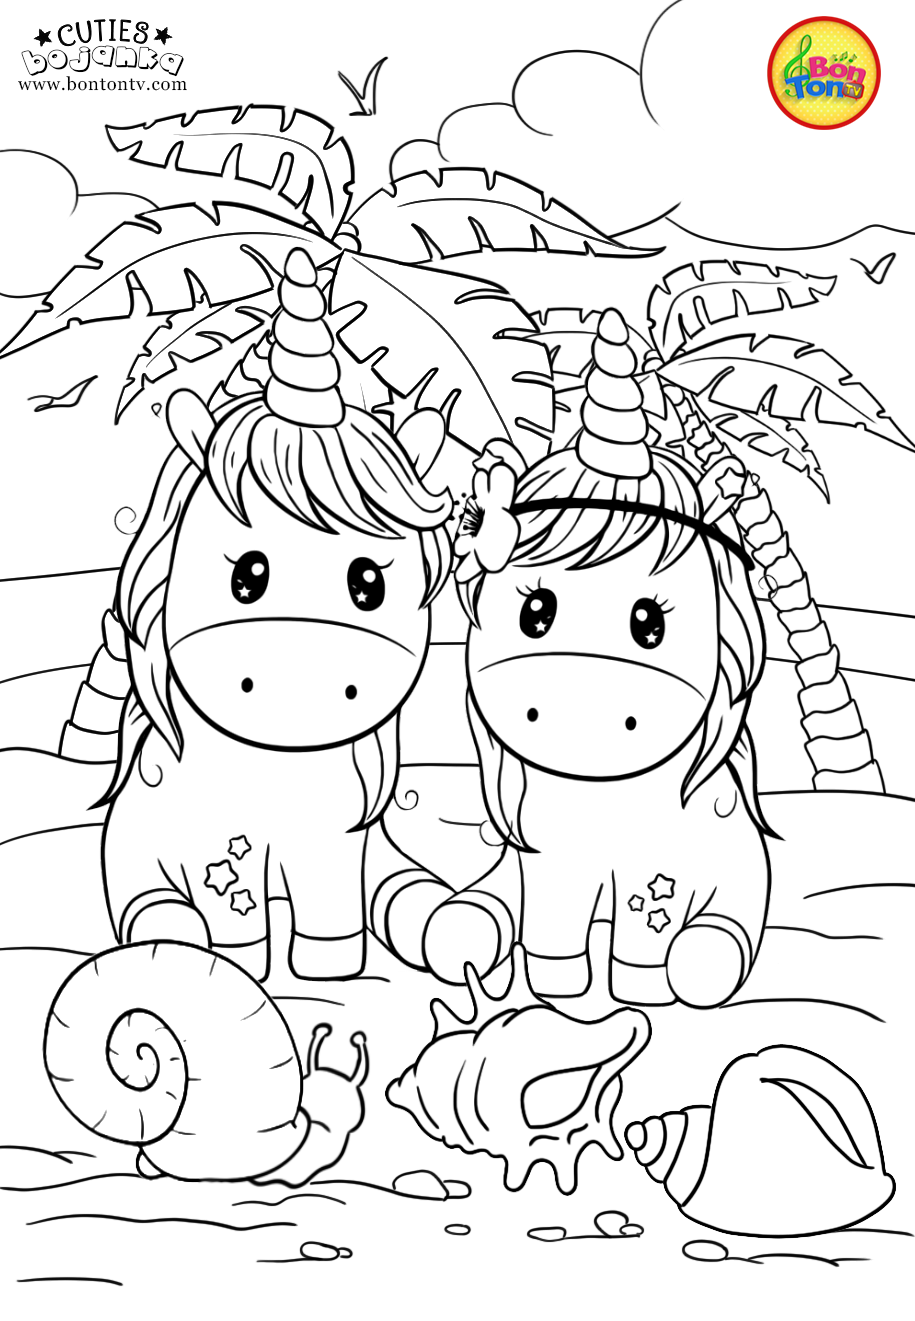 Free Kids Coloring Pages By Tori Walter Zollinger On Coloring